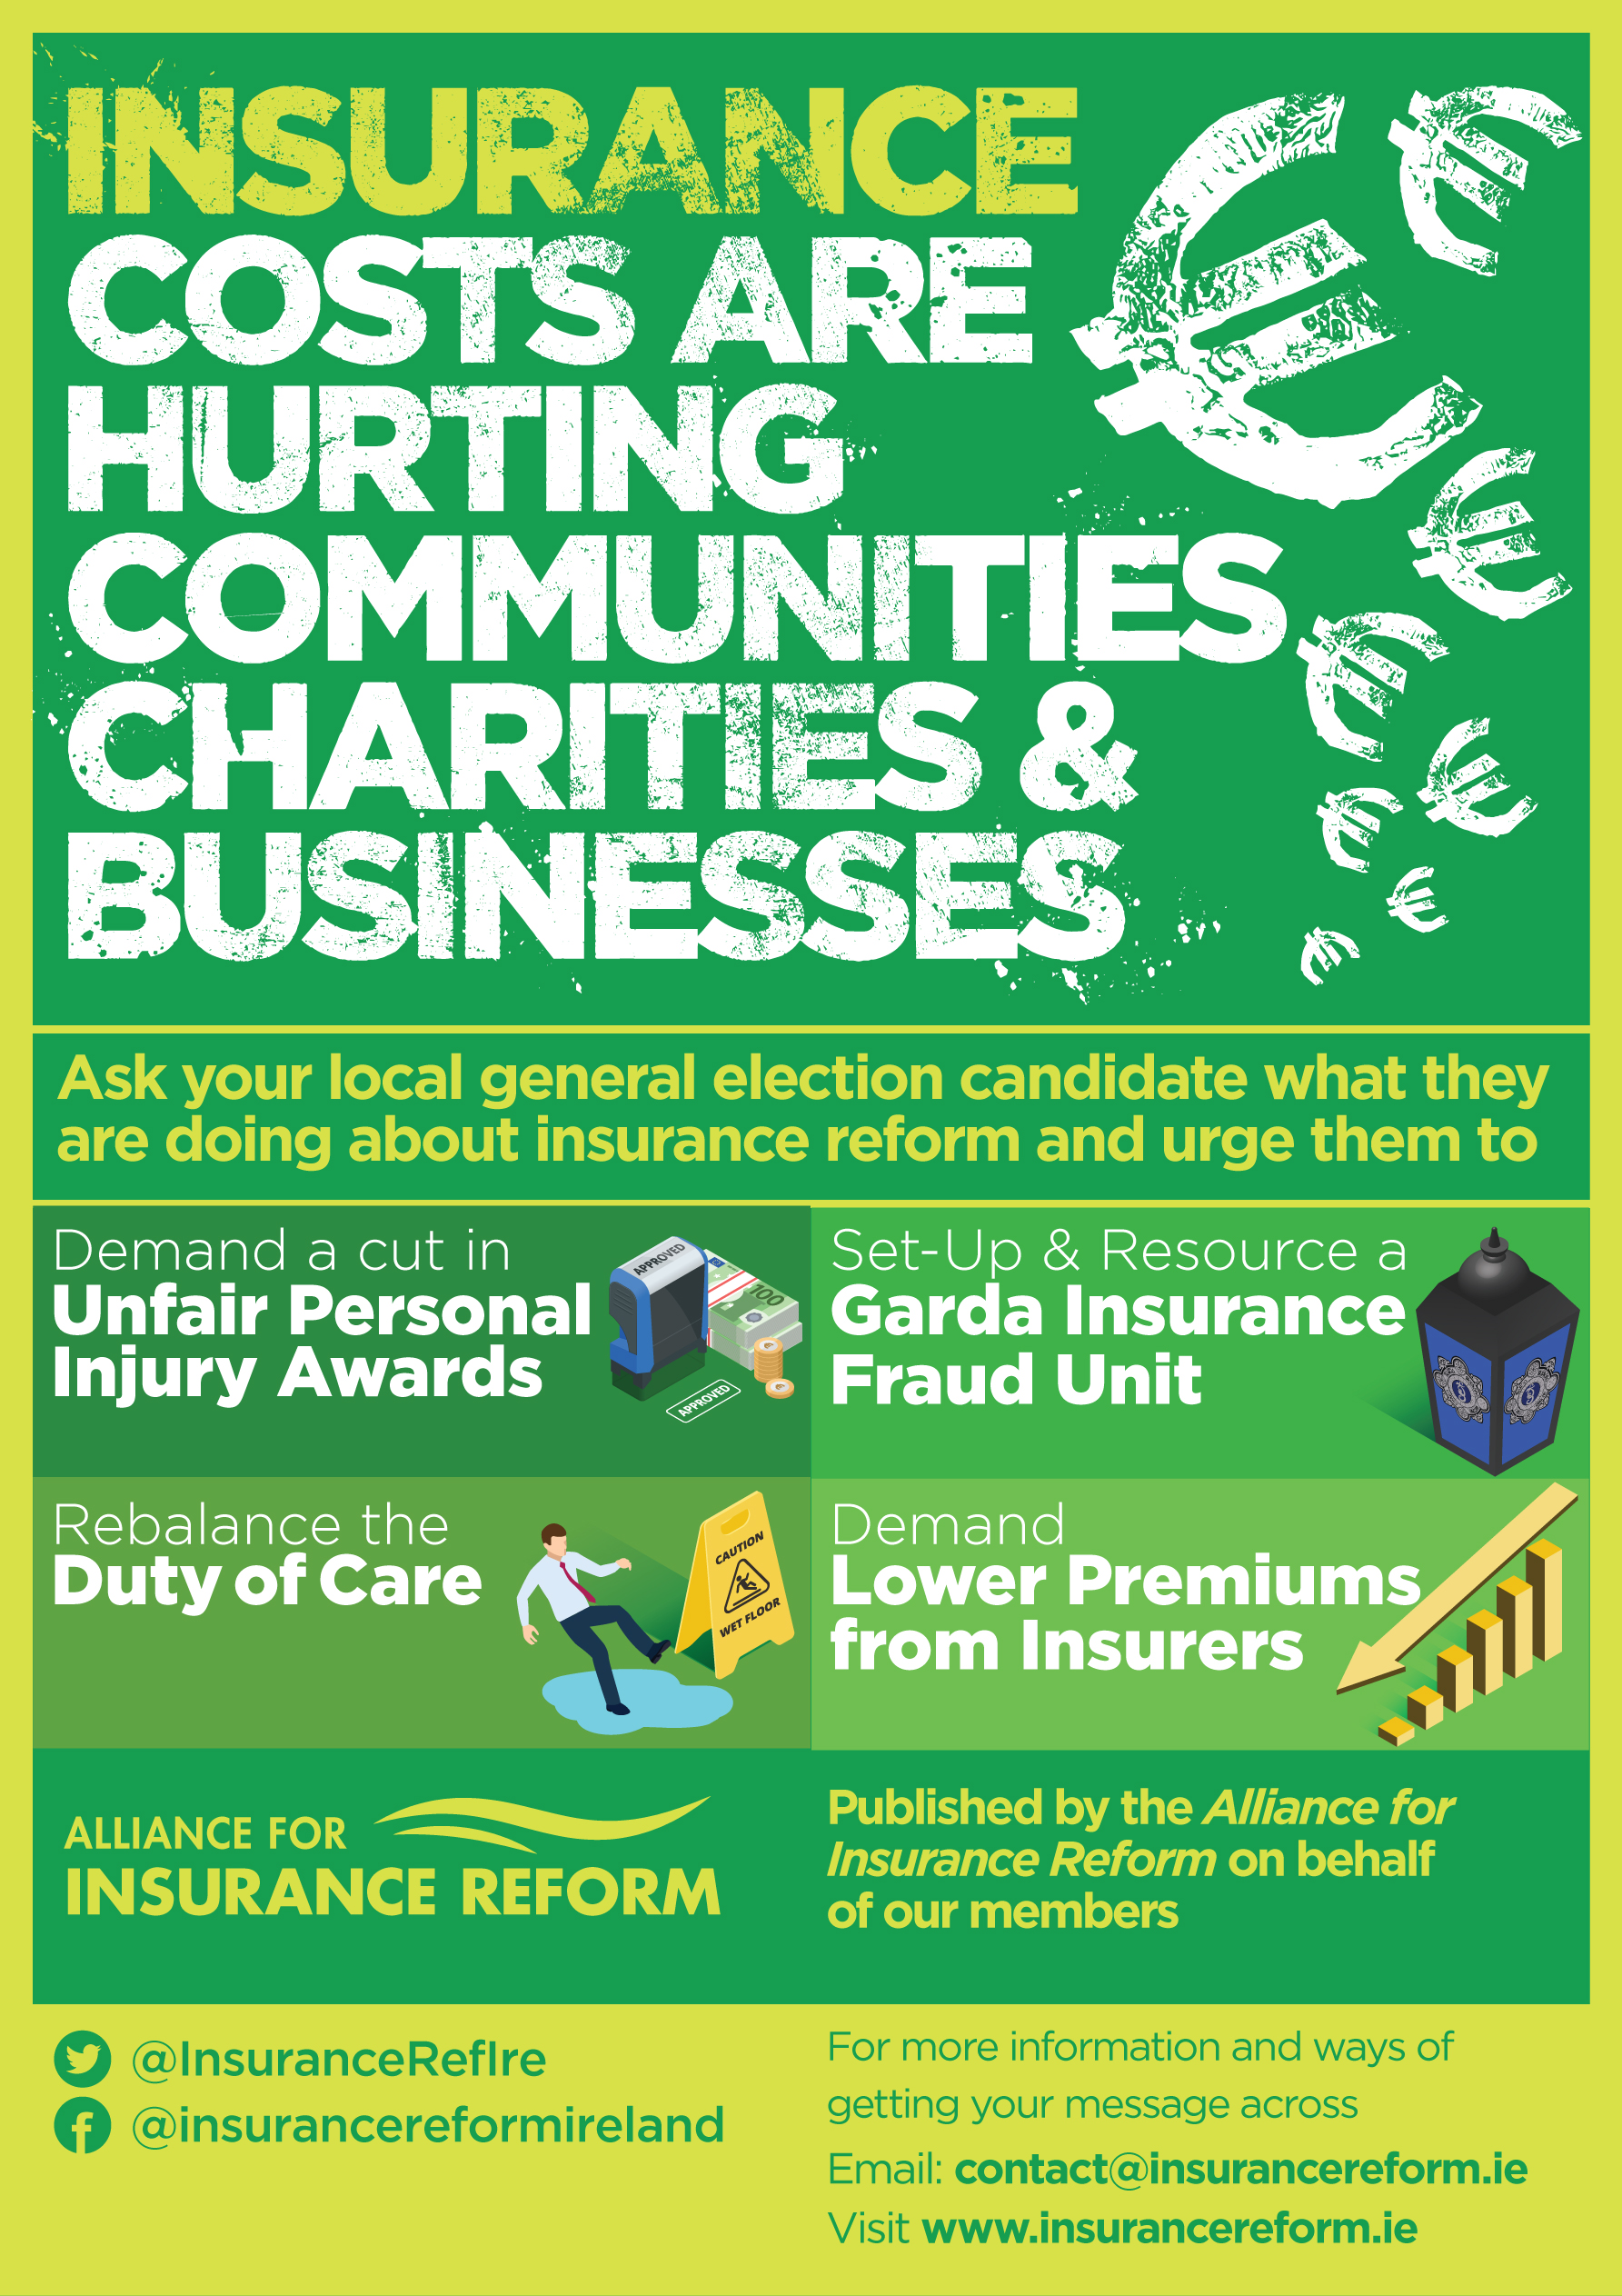 Ask your local candidate about insurance reform